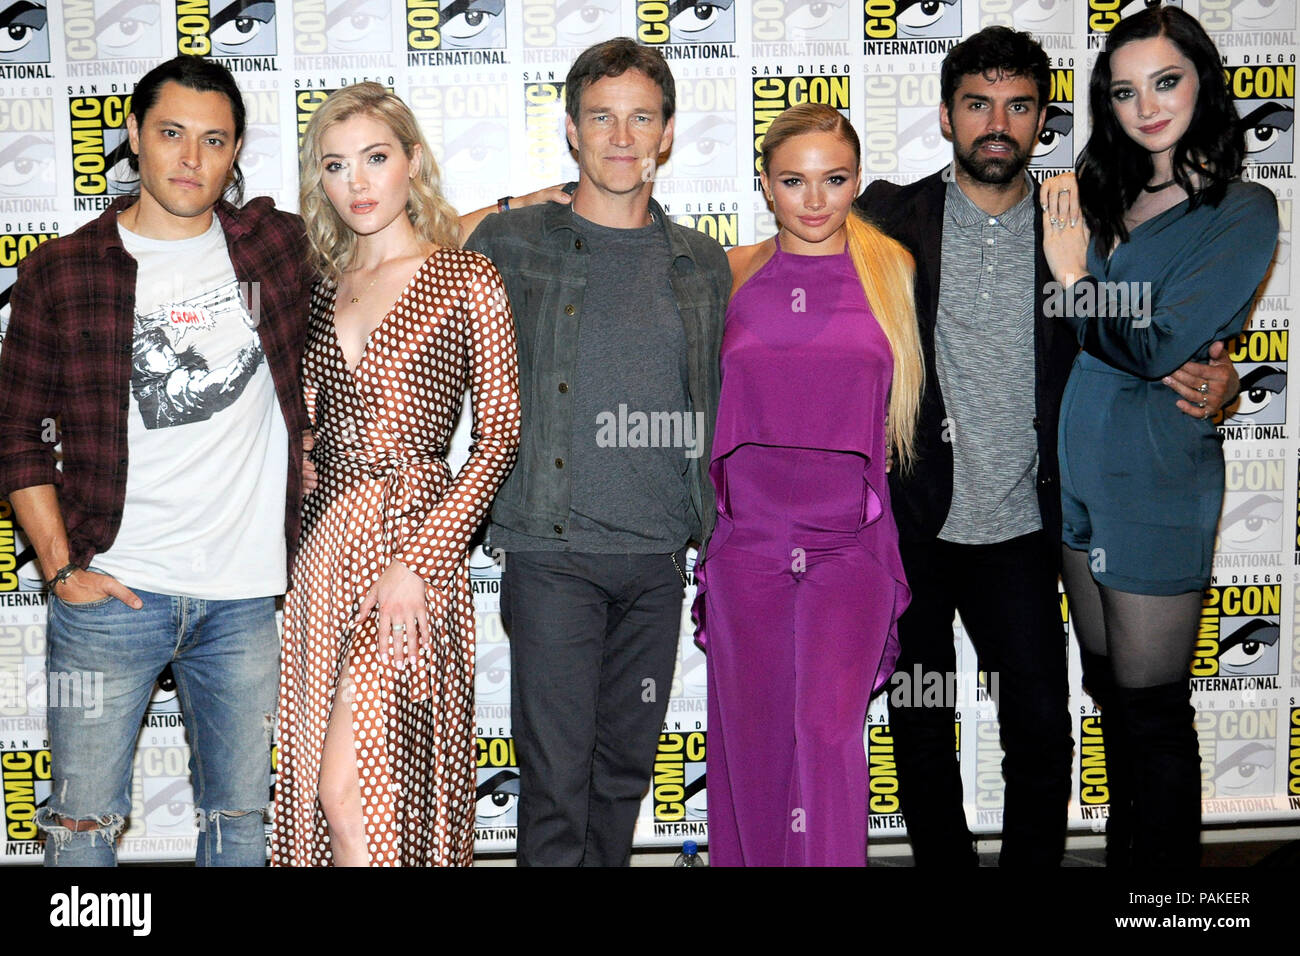 Blair Redford, Skyler Samuels, Stephen Moyer, Natalie Alyn Lind, Sean Teale and Emma Dumont at the Photocall for the Fox TV series 'The Gifted' at the San Diego Comic-Con International 2018 at the Hilton Bayfront hotel. San Diego, 21.07.2018 | usage worldwide - Stock Image